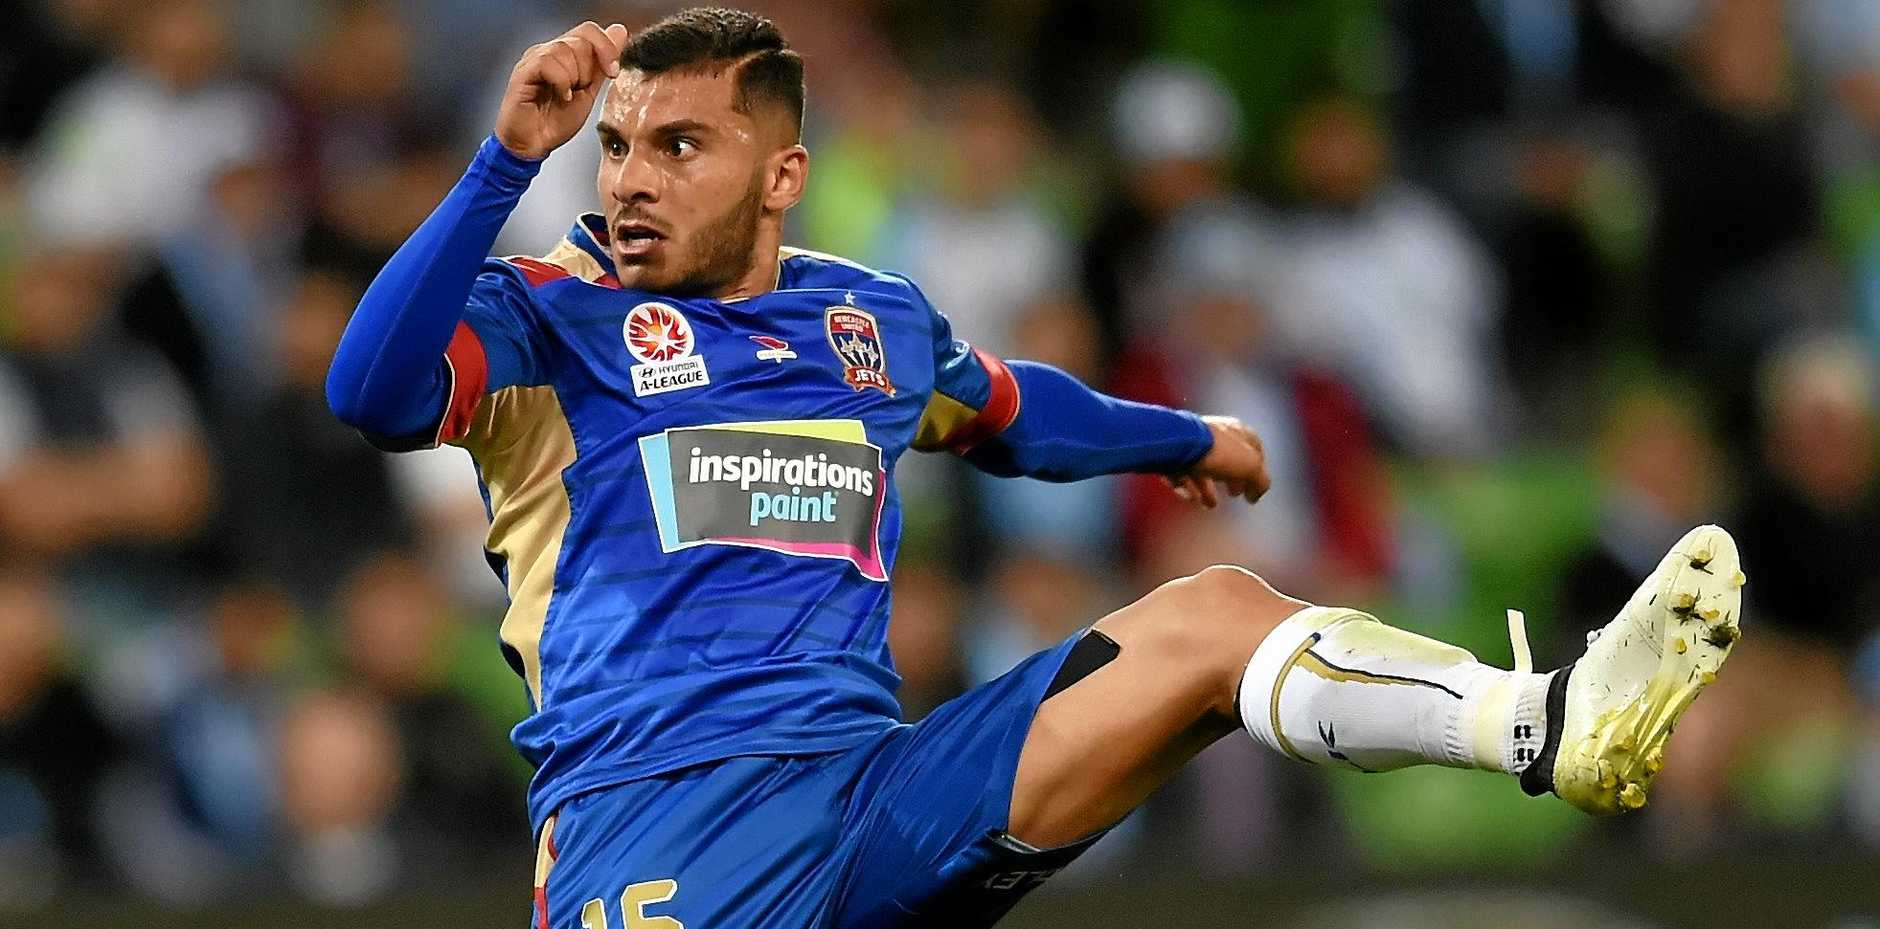 Andrew Nabbout of the Jets has had a promising start to the season.